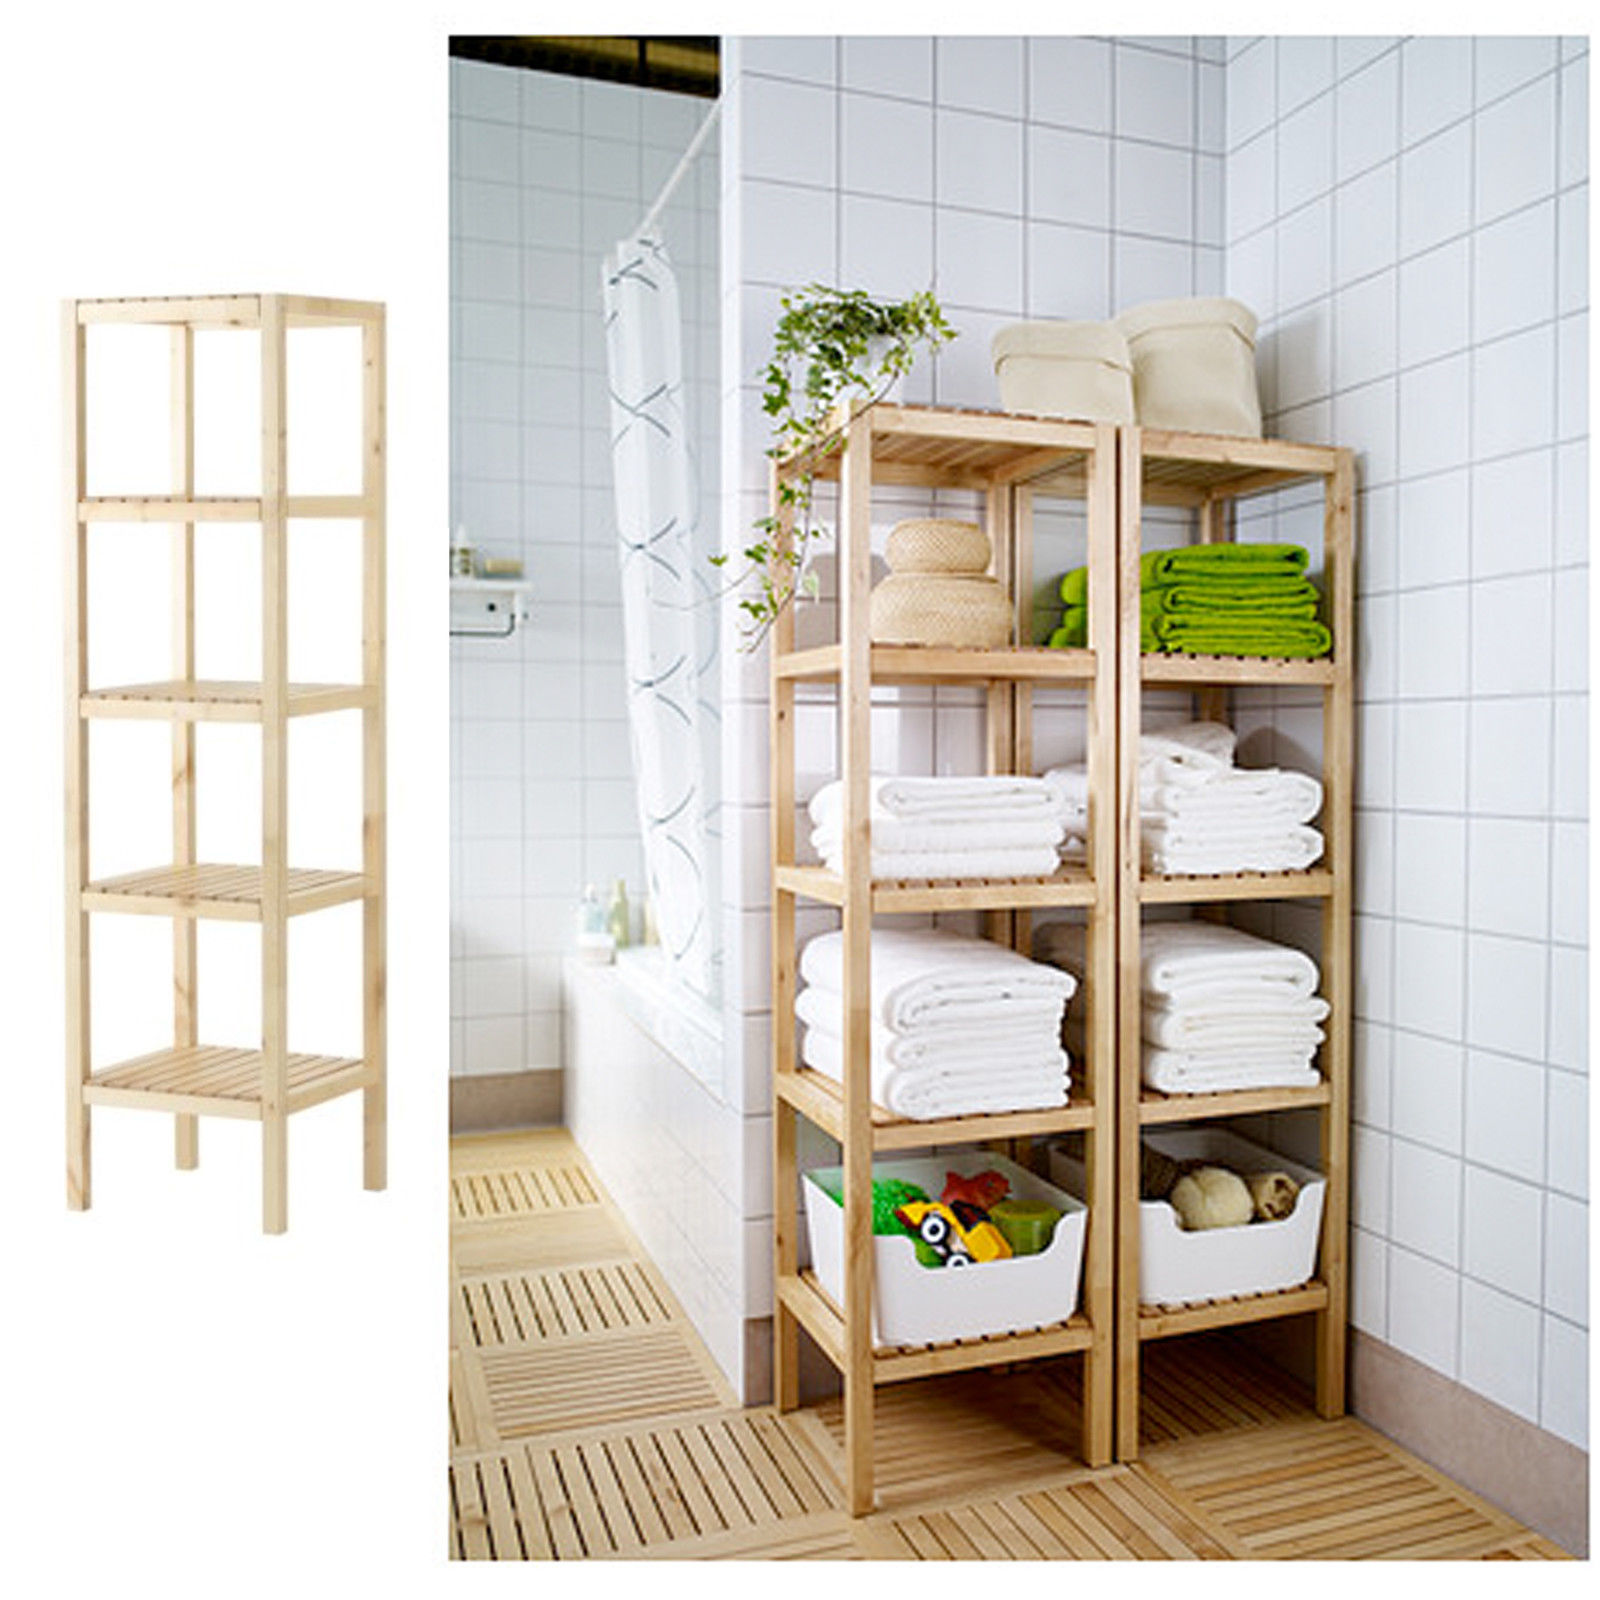 Duschkorb Ikea Hngeregal Badezimmer Excellent Best With Bad Hngeregal With Krbe